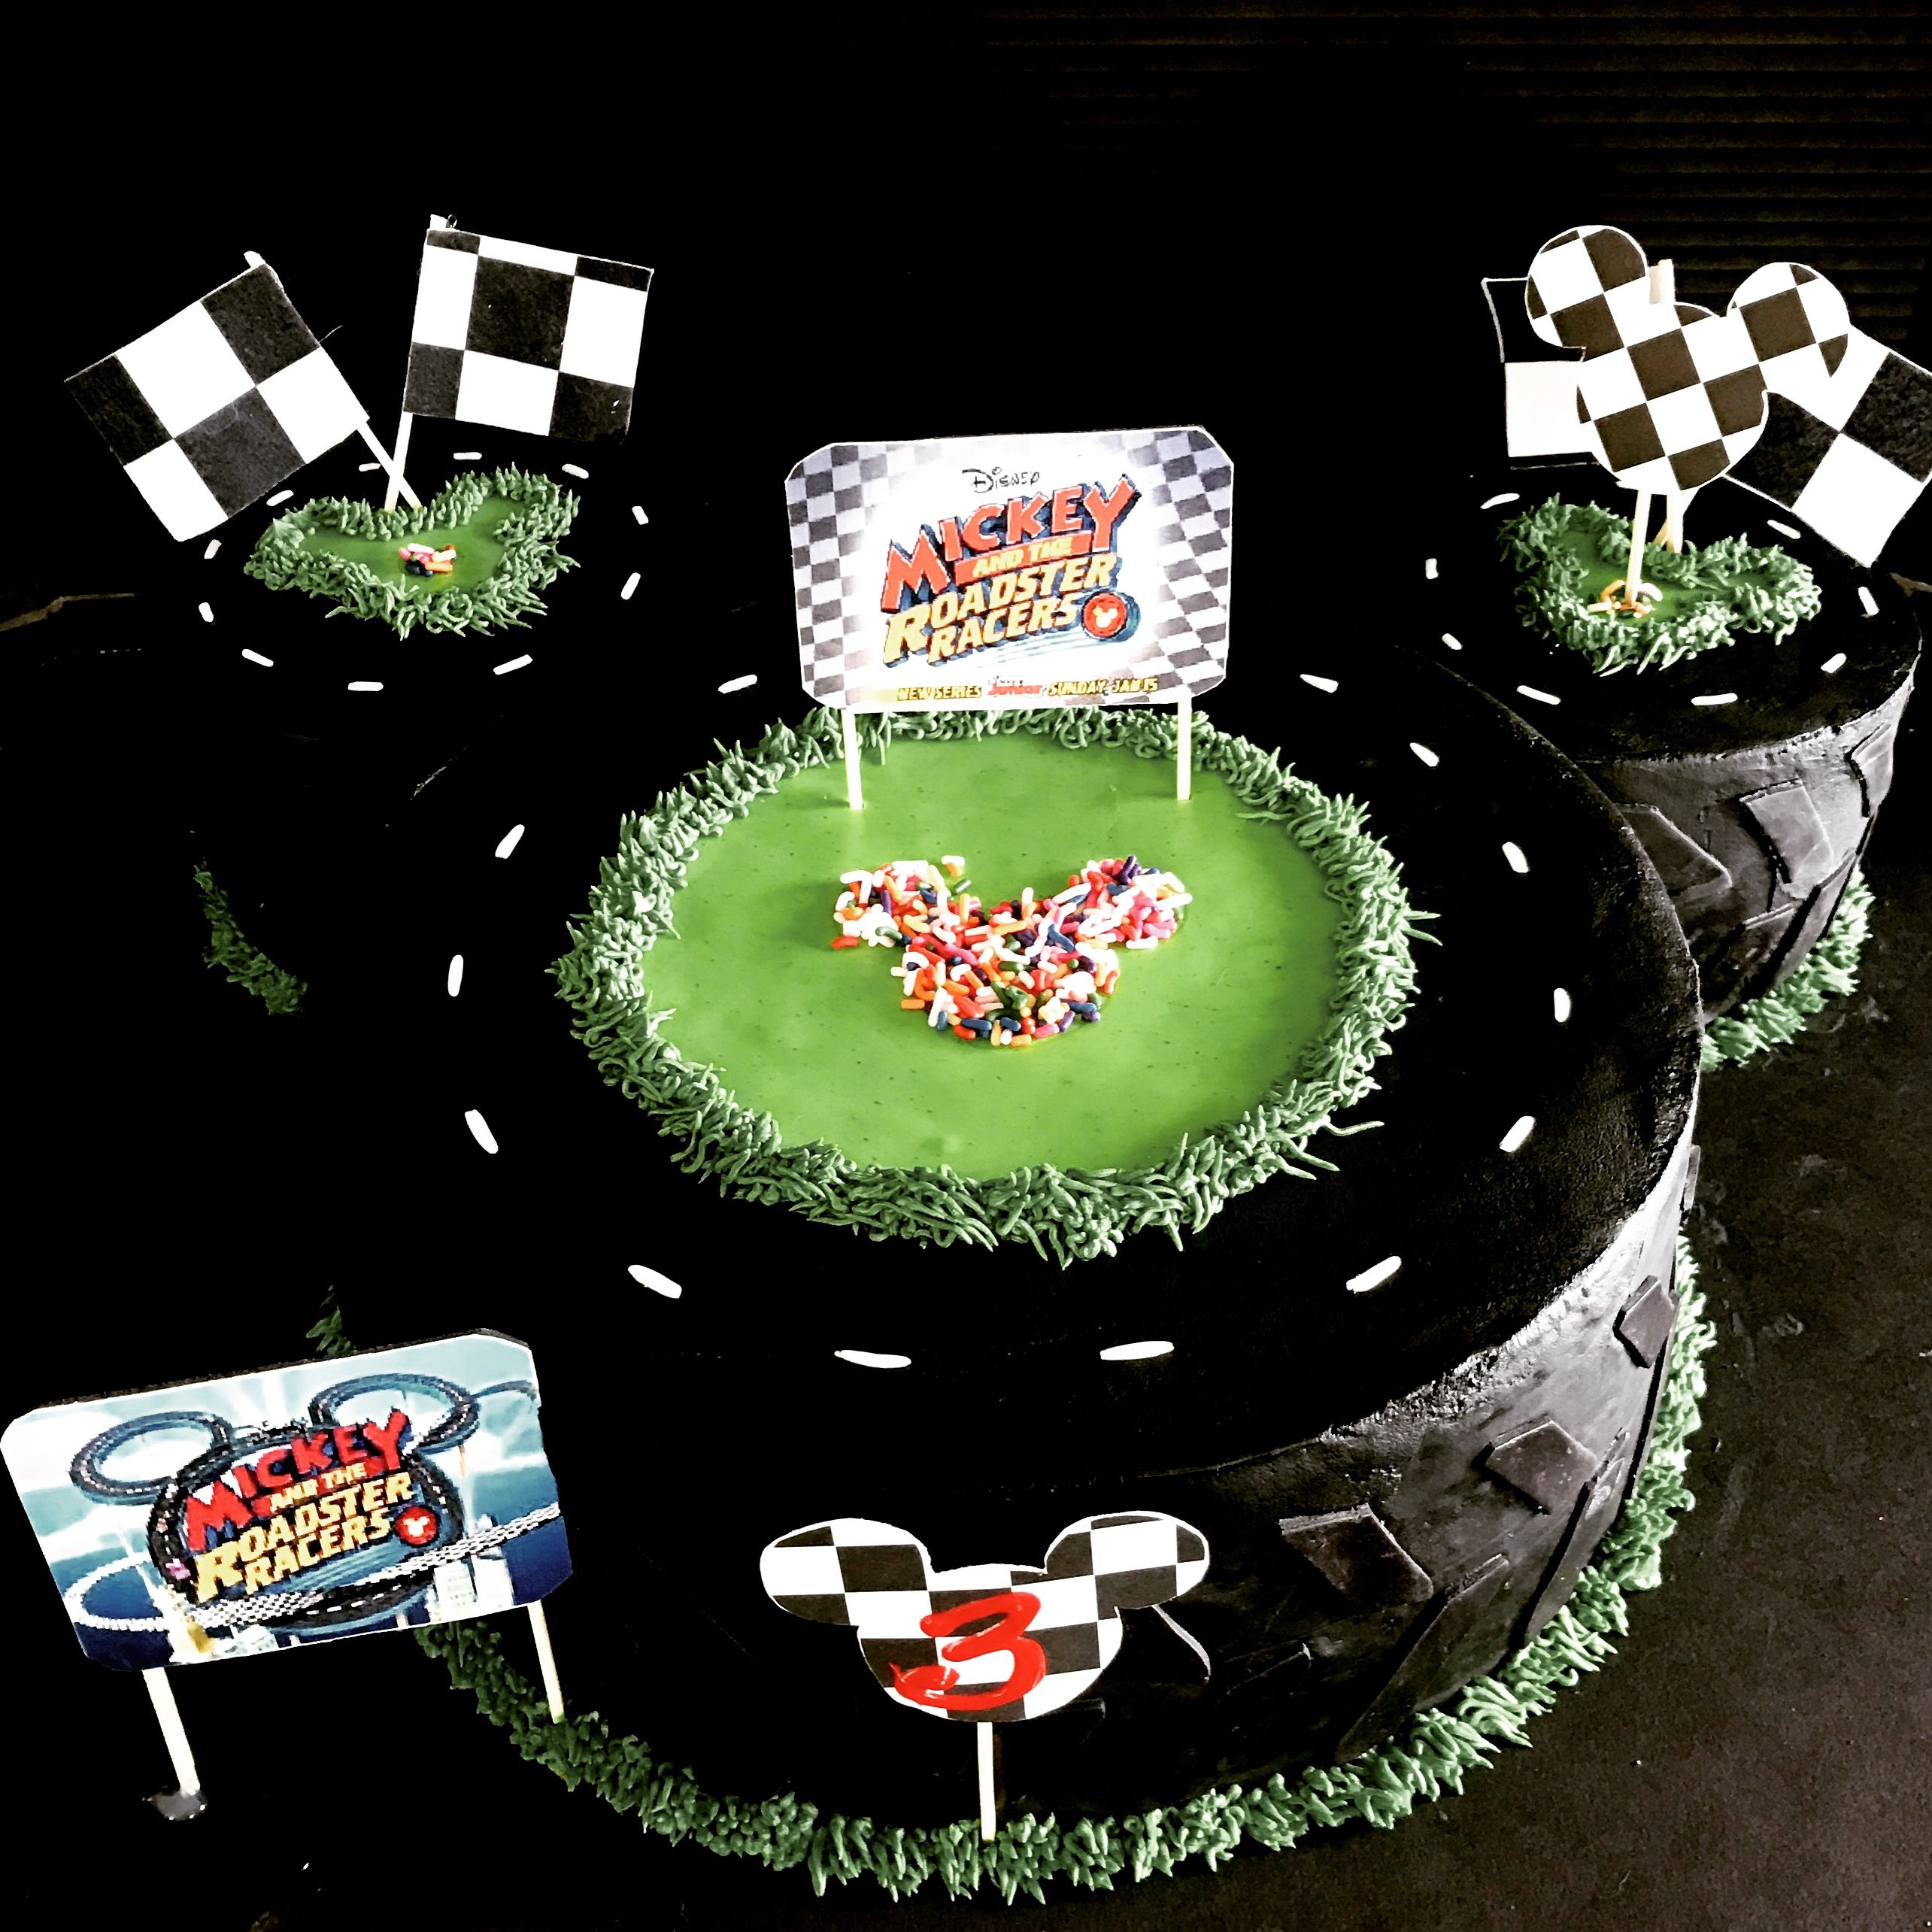 Mickey Mouse Road A Racers Themed Happy Birthday Cake Sweet